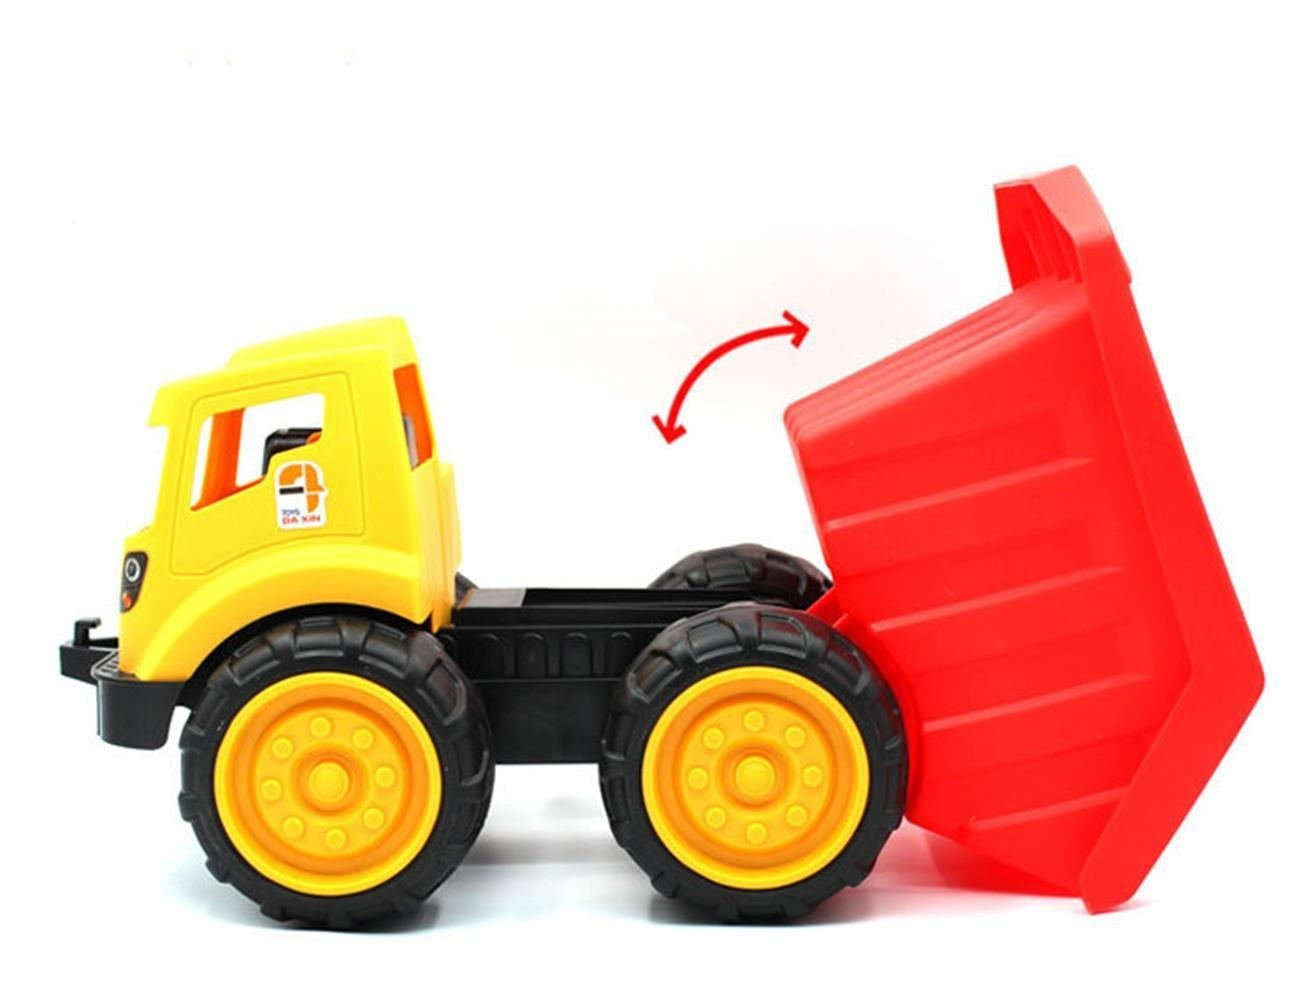 Mbros.KRJW Construction Vehicles Toys Dump Truck,Bulldozer,Excavator Size S M L Available Sturdy Kid Toy for Toddler Boys and Girls (Dump Truck Large)